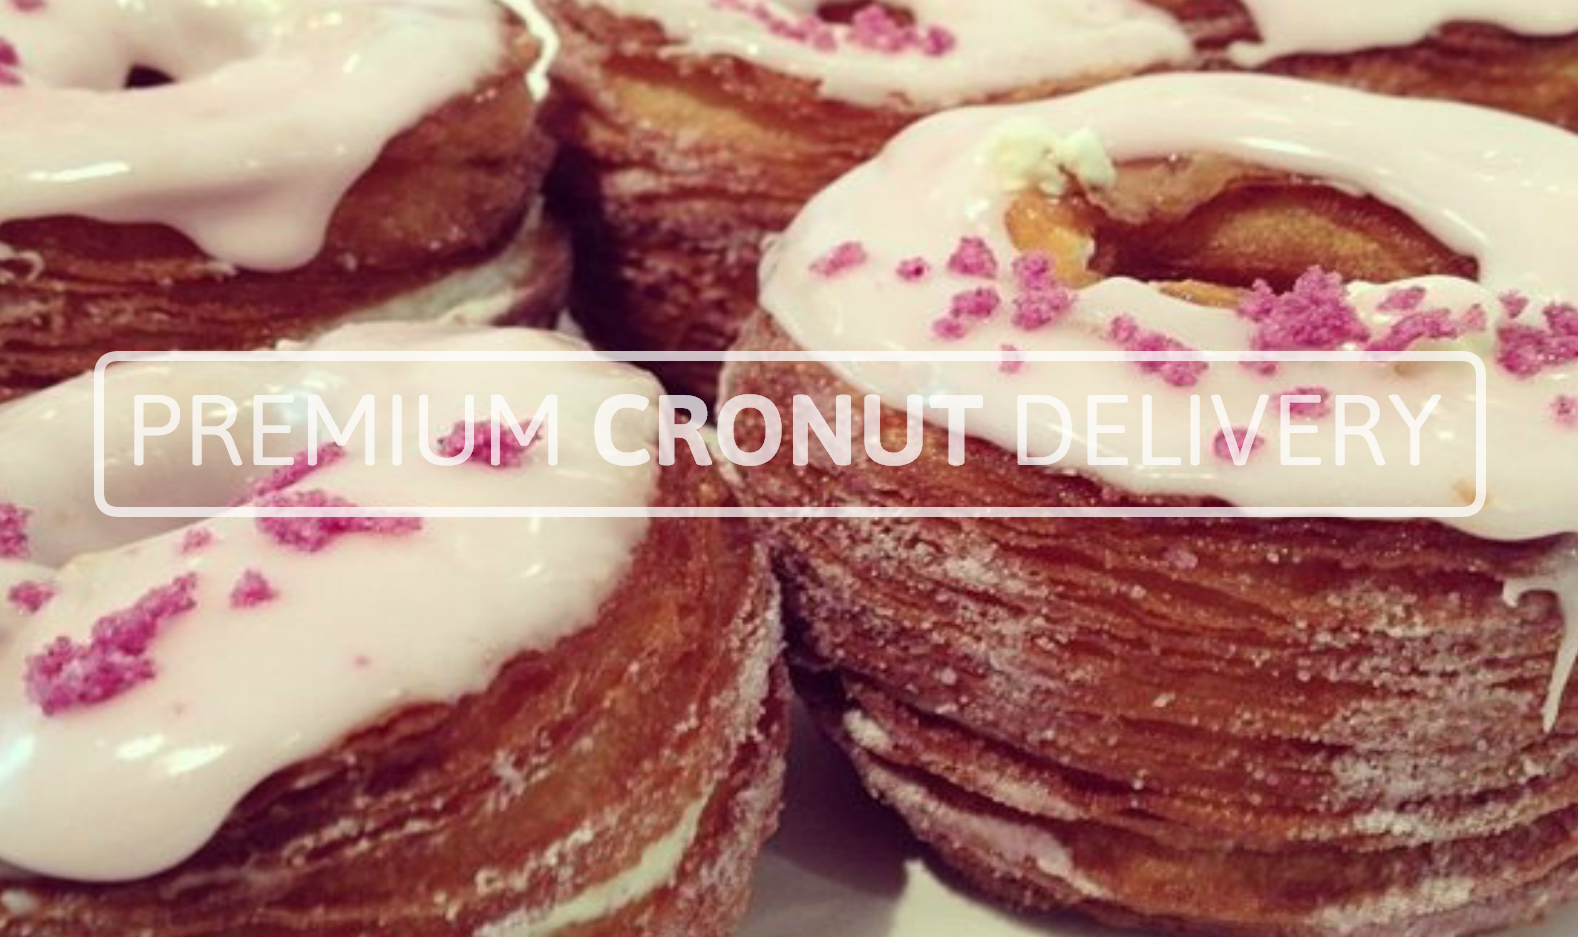 croissan donught delivery Chef Ansel Cracking Down on Scalpers Charging $100 Per Cronut